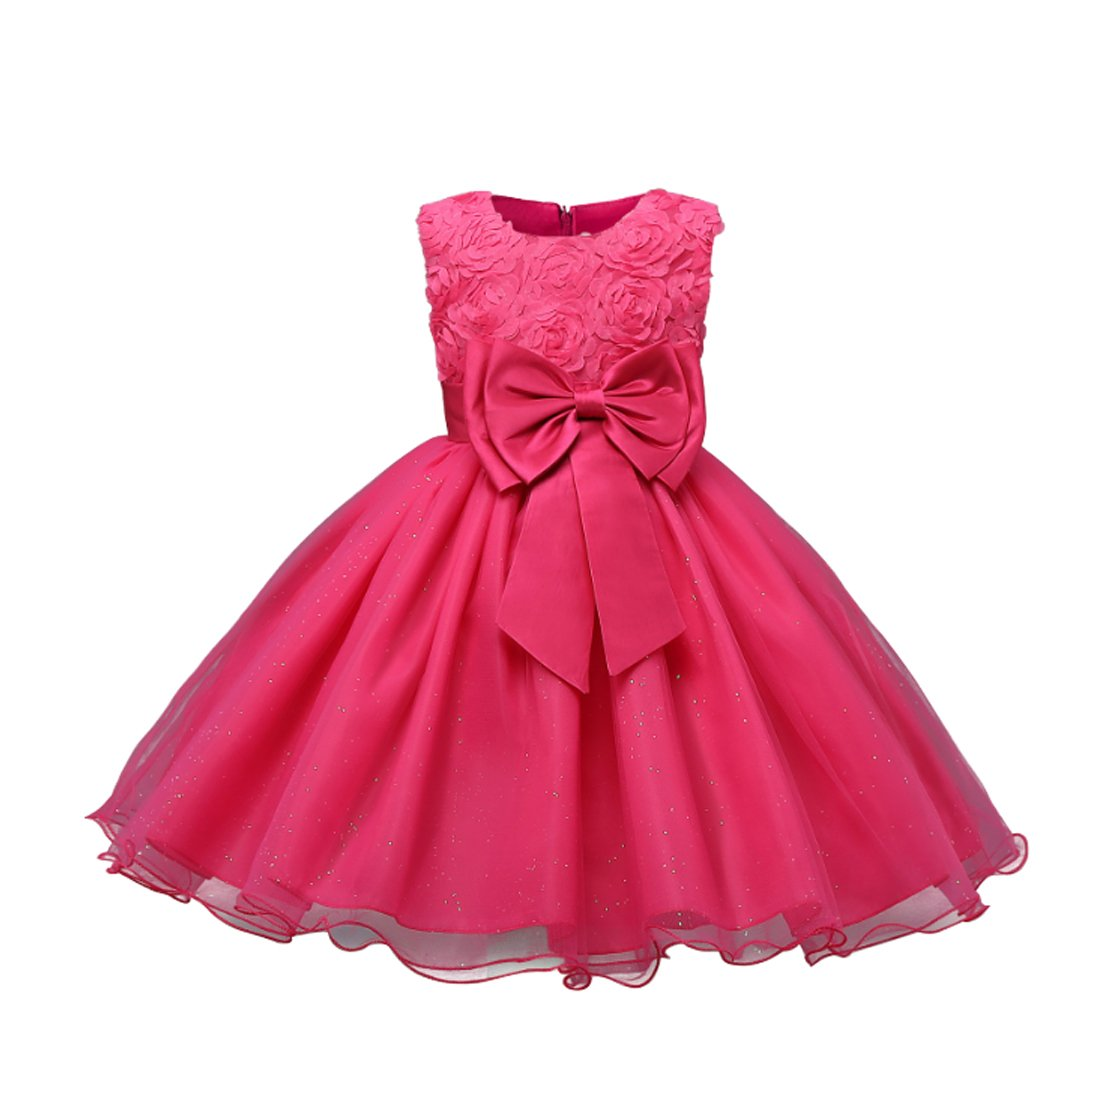 Inlefen Girls Party Dress Flower Girl Dress Bow Tie Belt Wedding Festa di compleanno Abiti per bambini Abiti